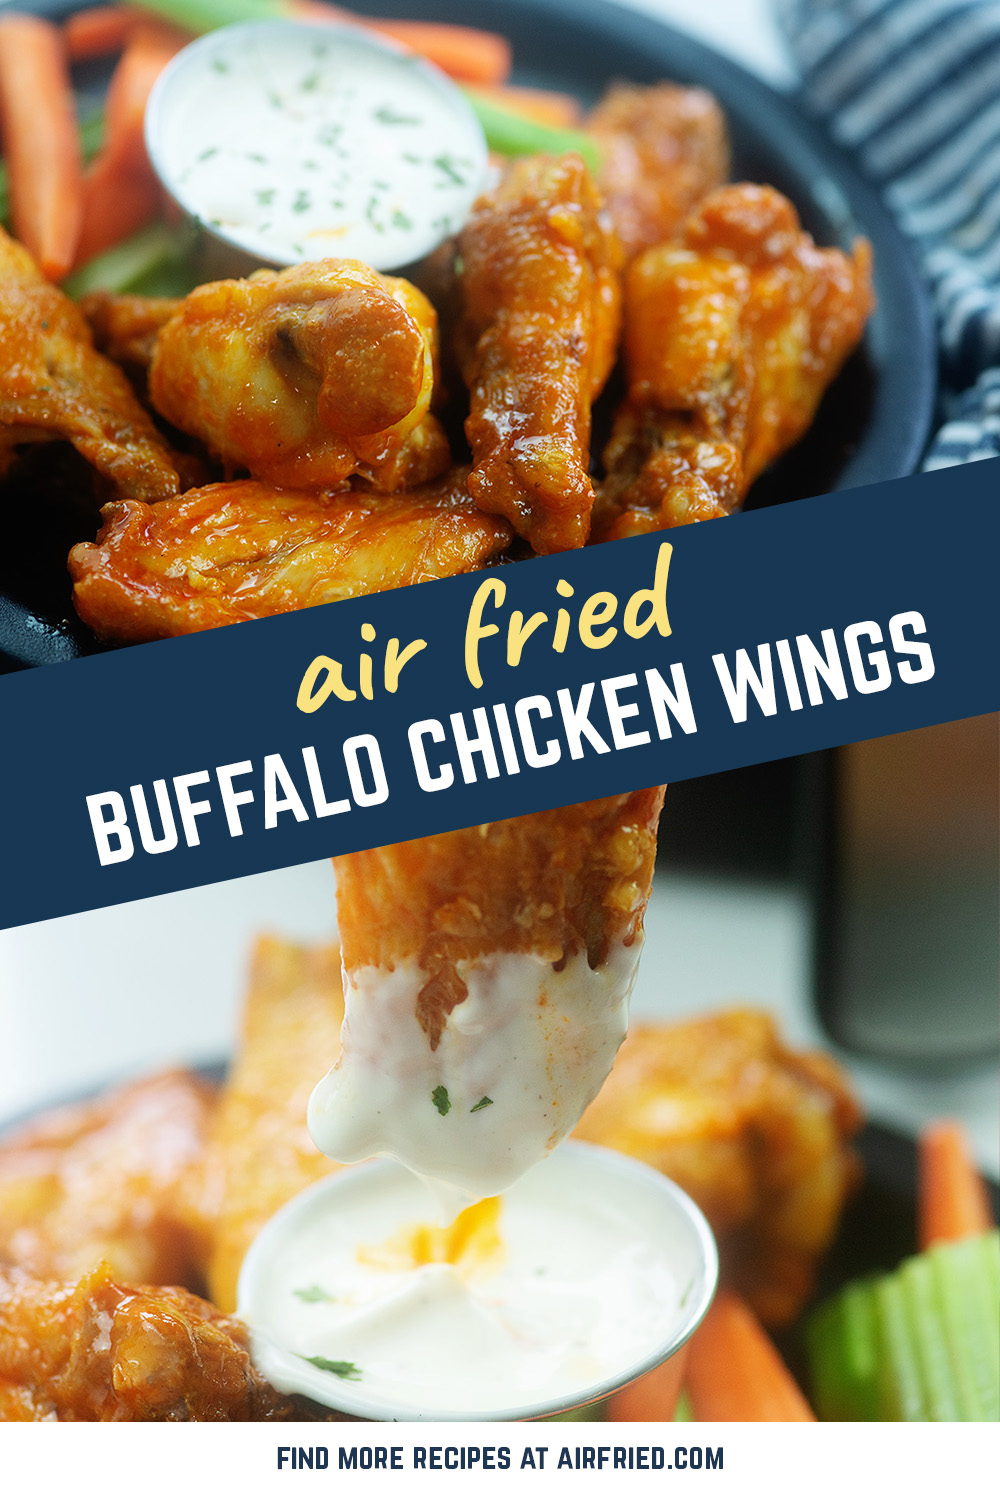 Frozen wings are excellent from the air fryer.  Toss them in your favorite buffalo sauce, or use our homemade version!